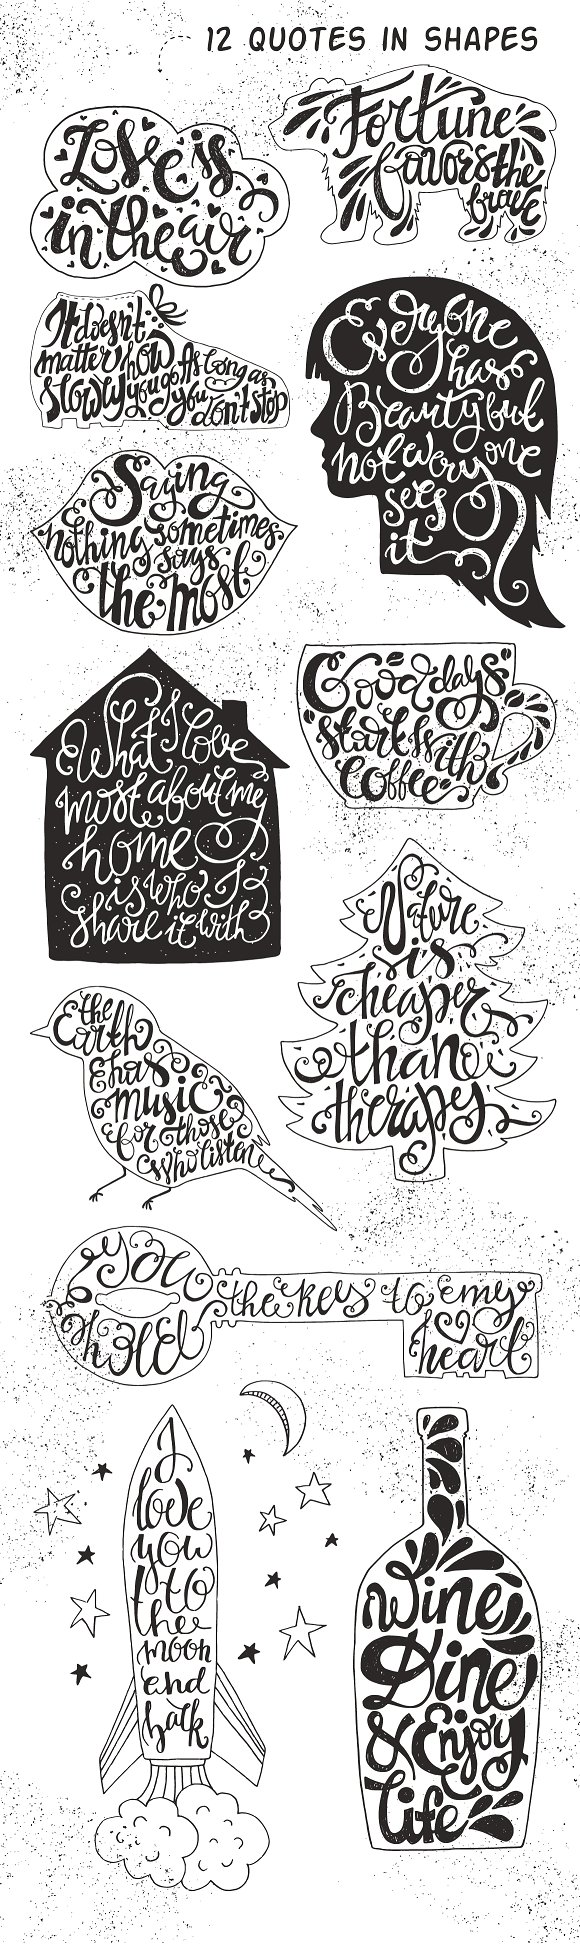 Download Free 26 Handdrawn Romantic Posters Graphic By Favete Art Creative for Cricut Explore, Silhouette and other cutting machines.